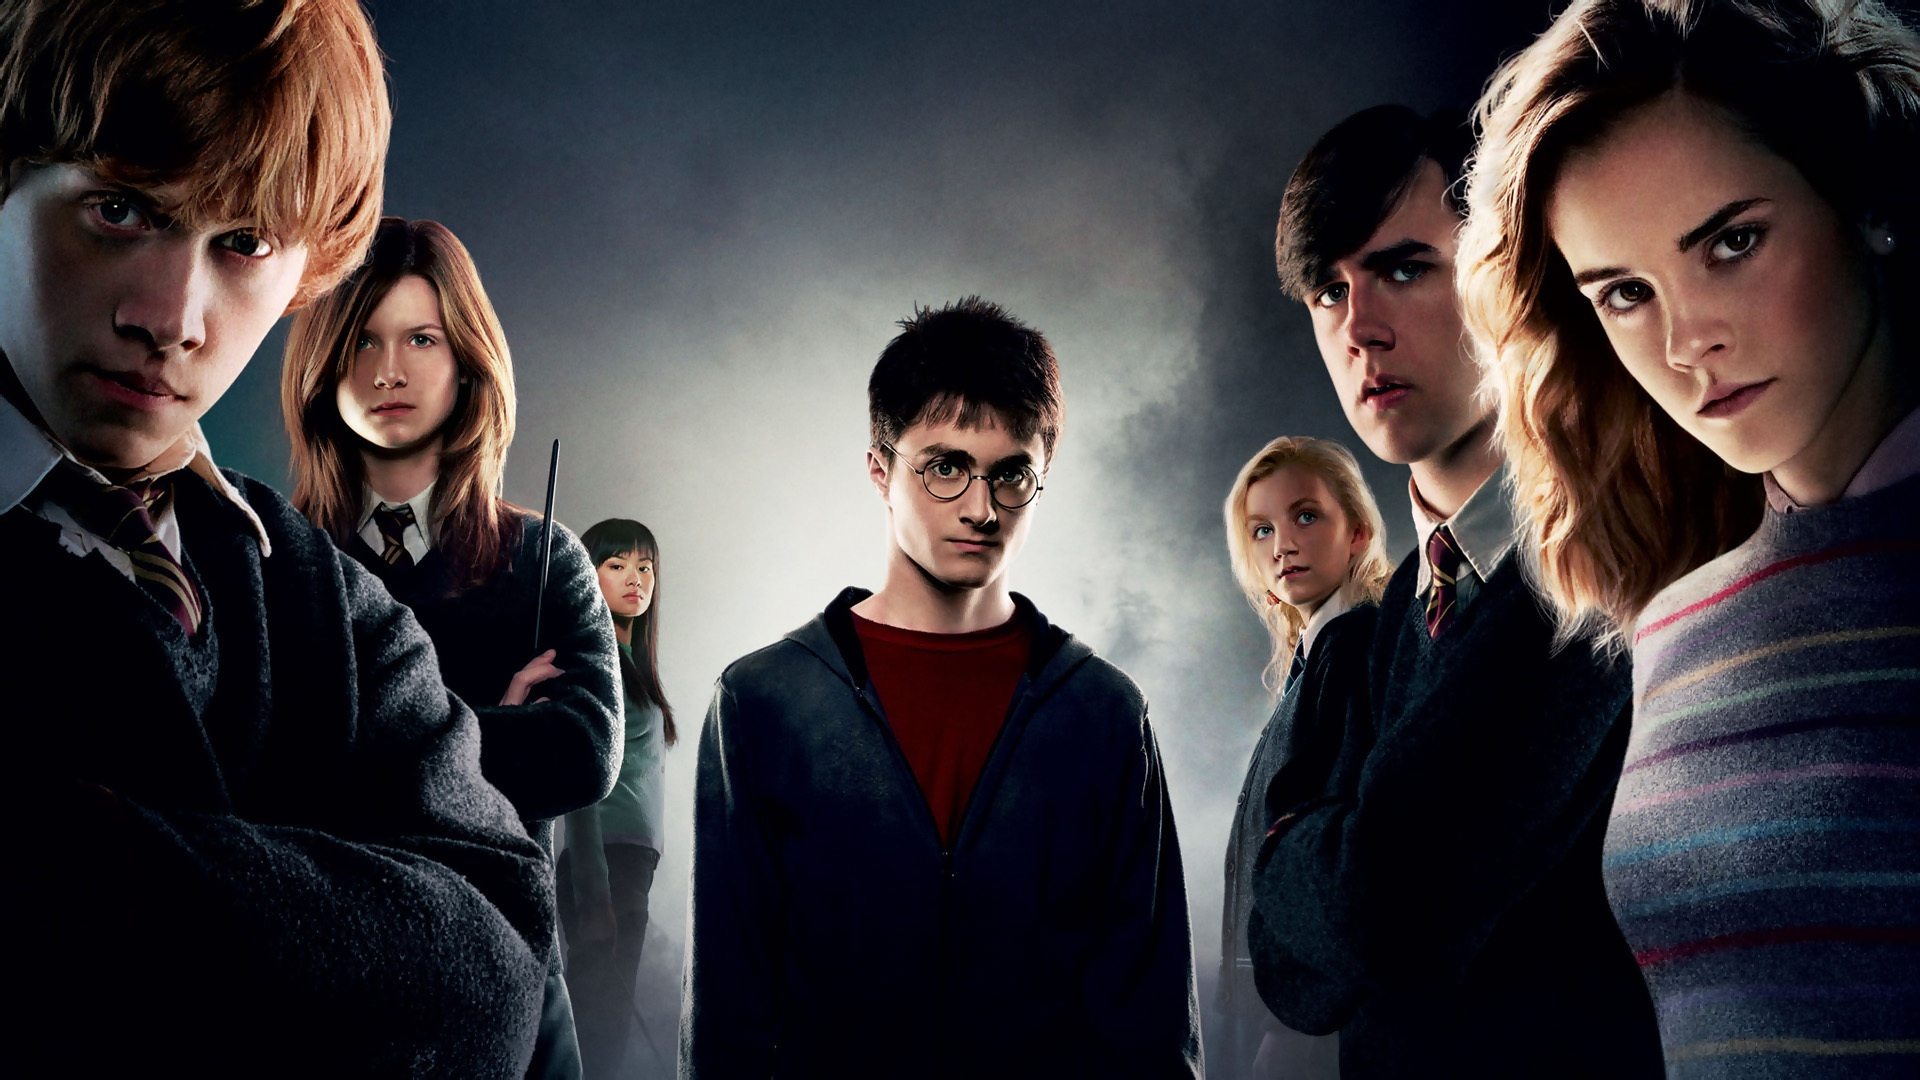 Wallpapers Harry Potter 1920x1080 Full HD 2K Picture, Image